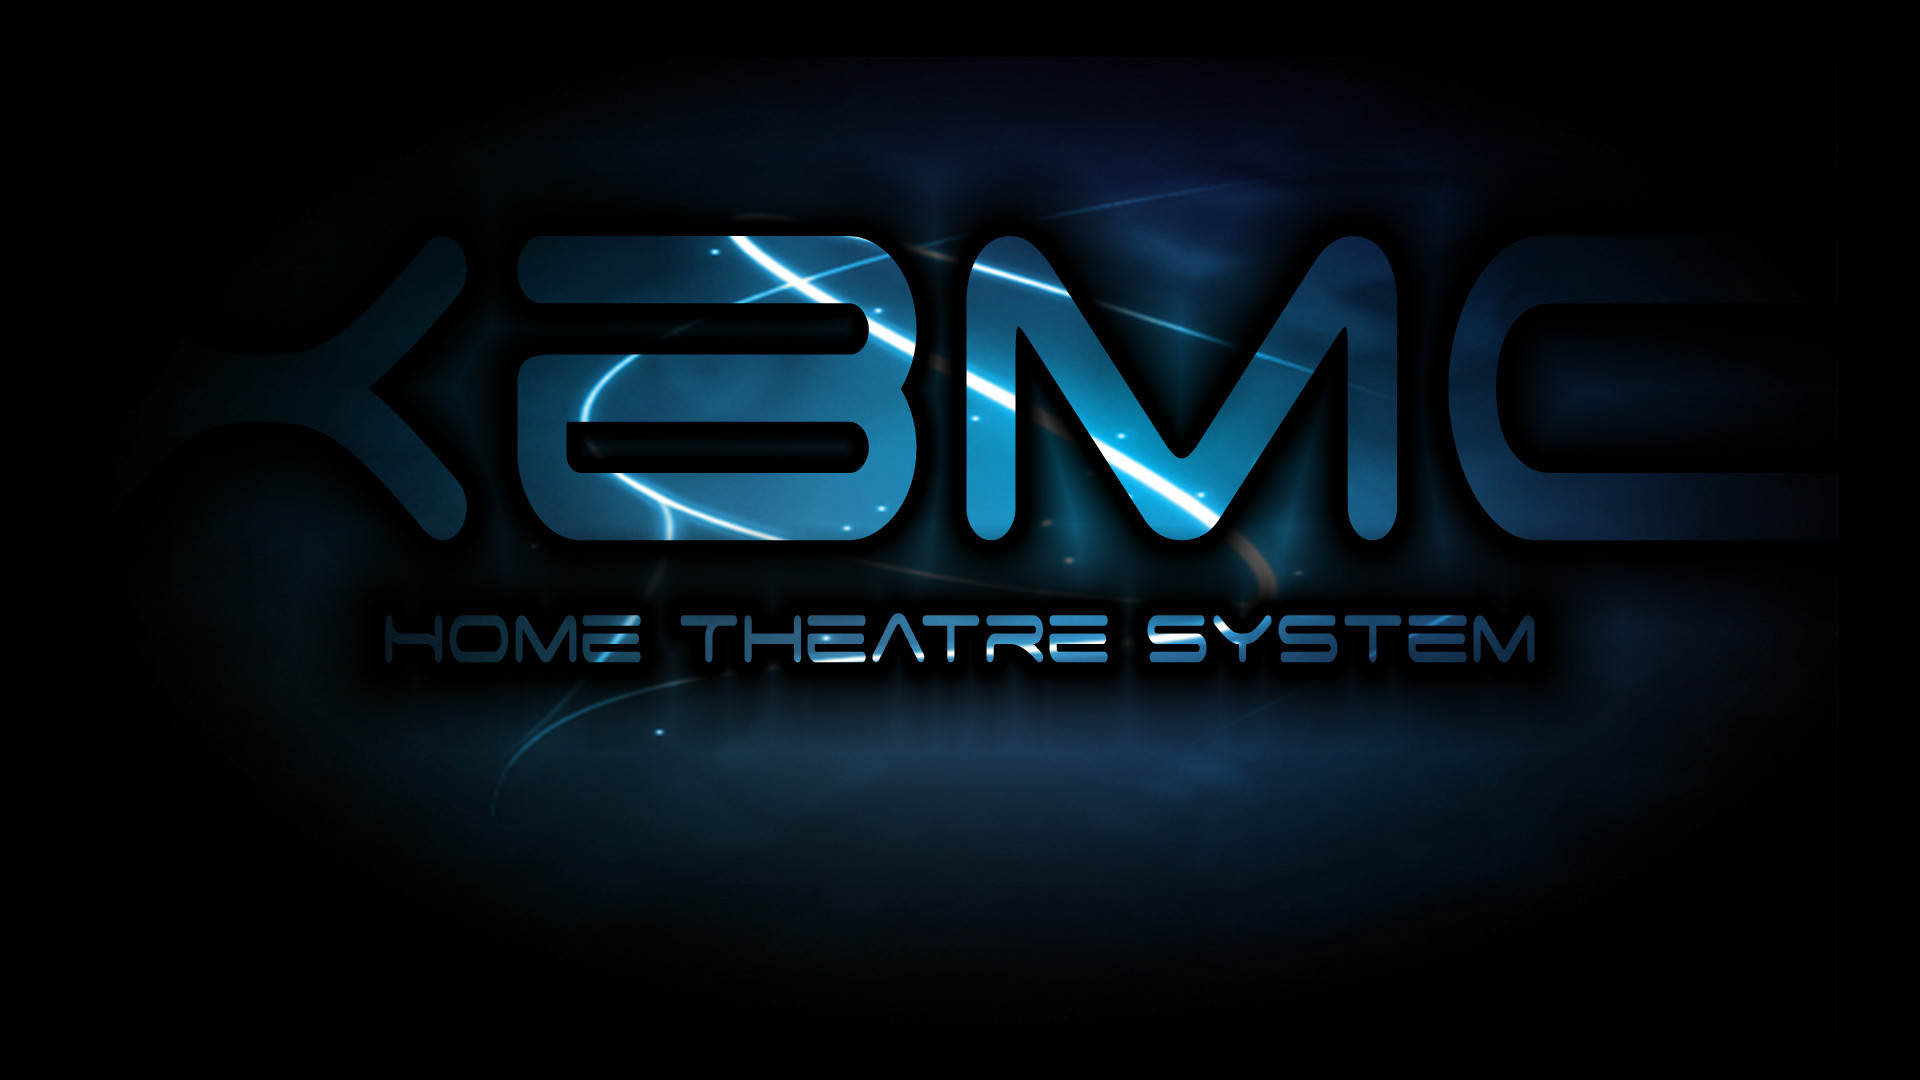 Images For Xbmc Wallpaper 1080p 1920x1080